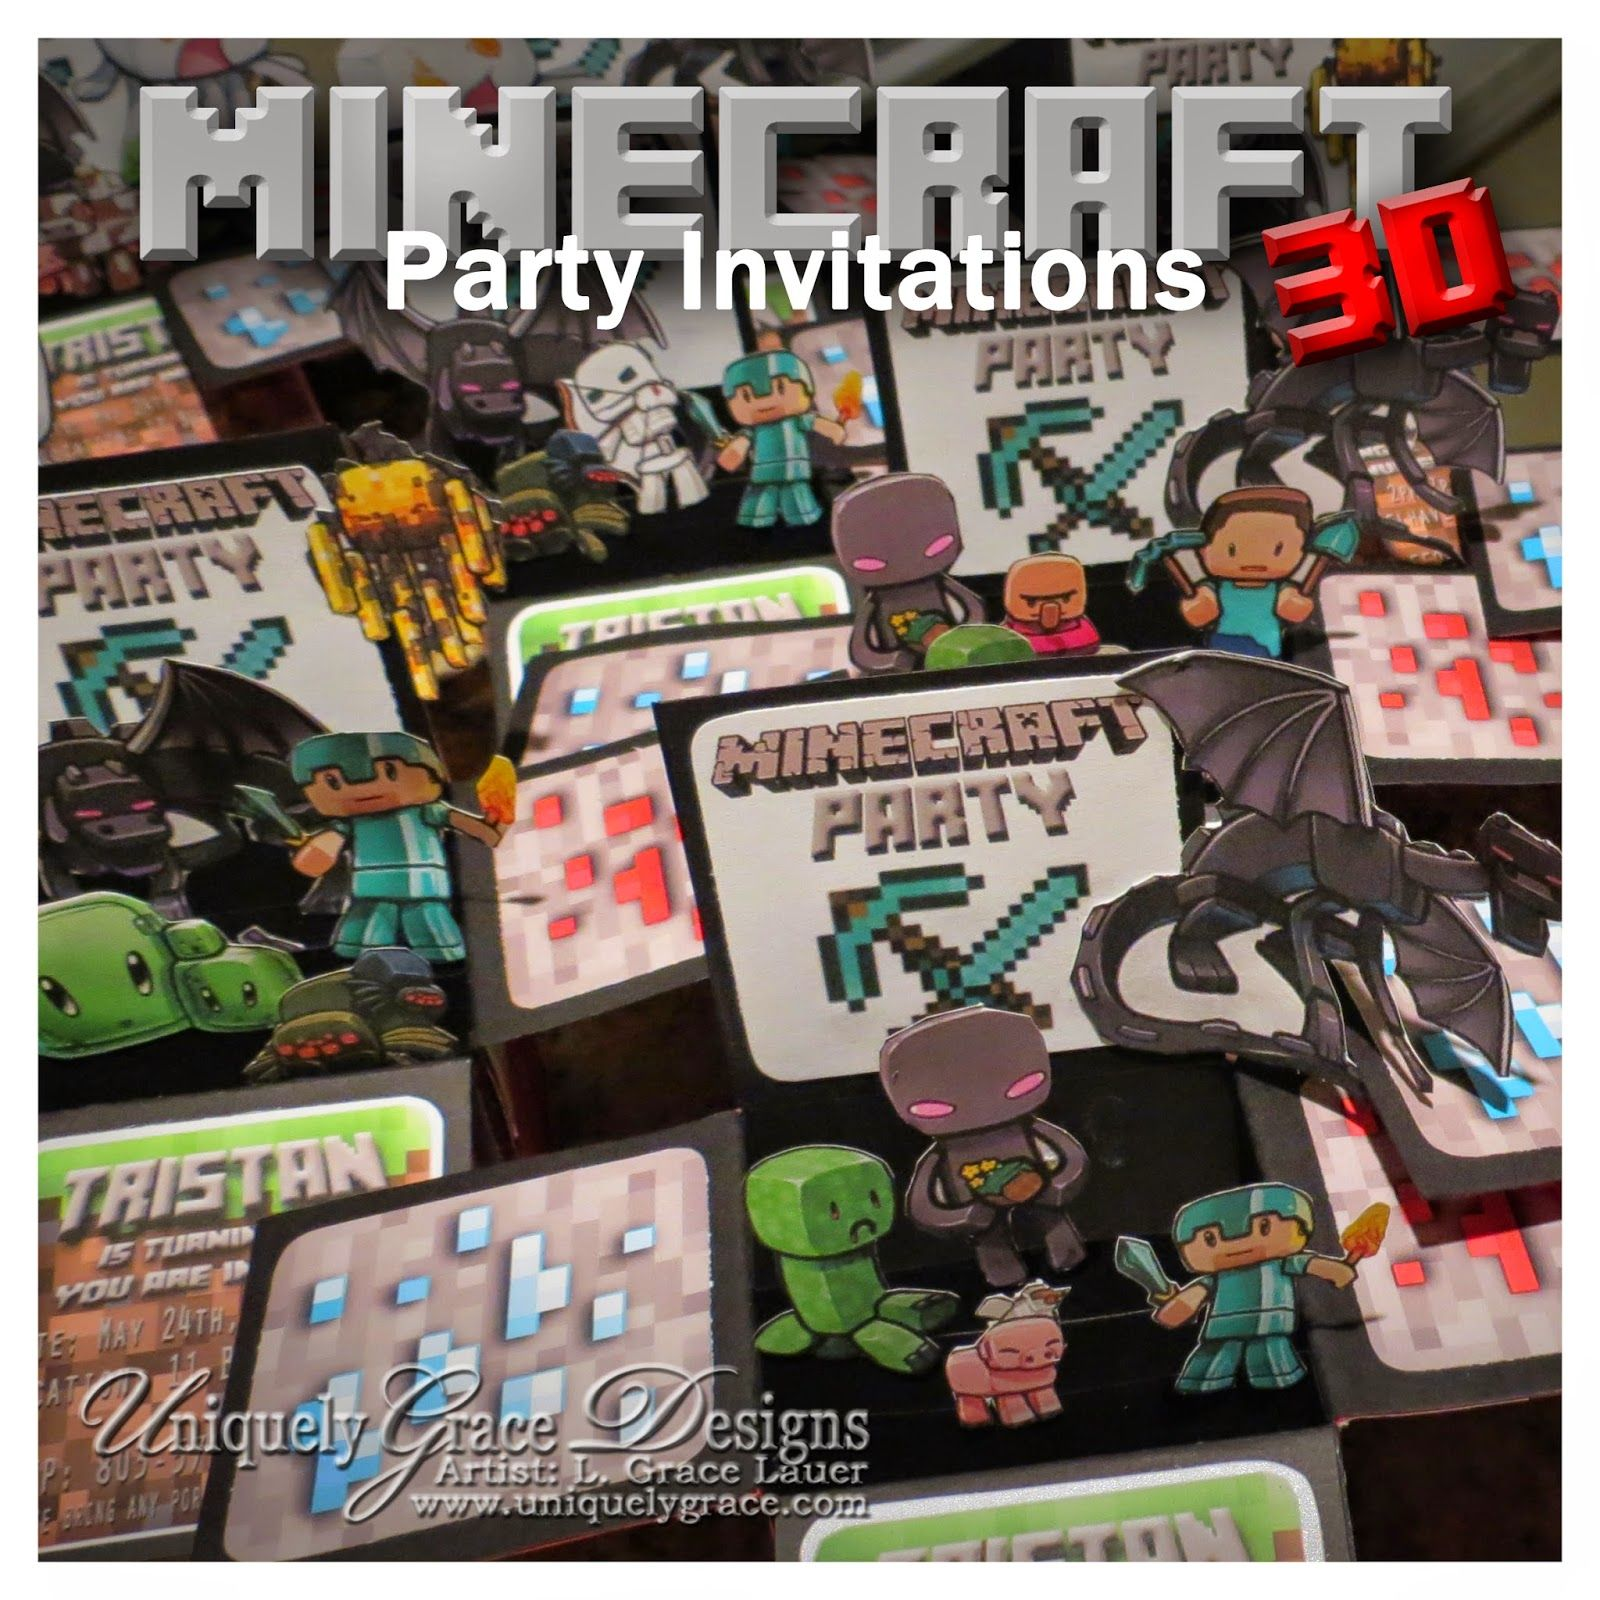 Uniquely Grace: Minecraft 3D Box Birthday Party Invitations - Custom Handmade Cards